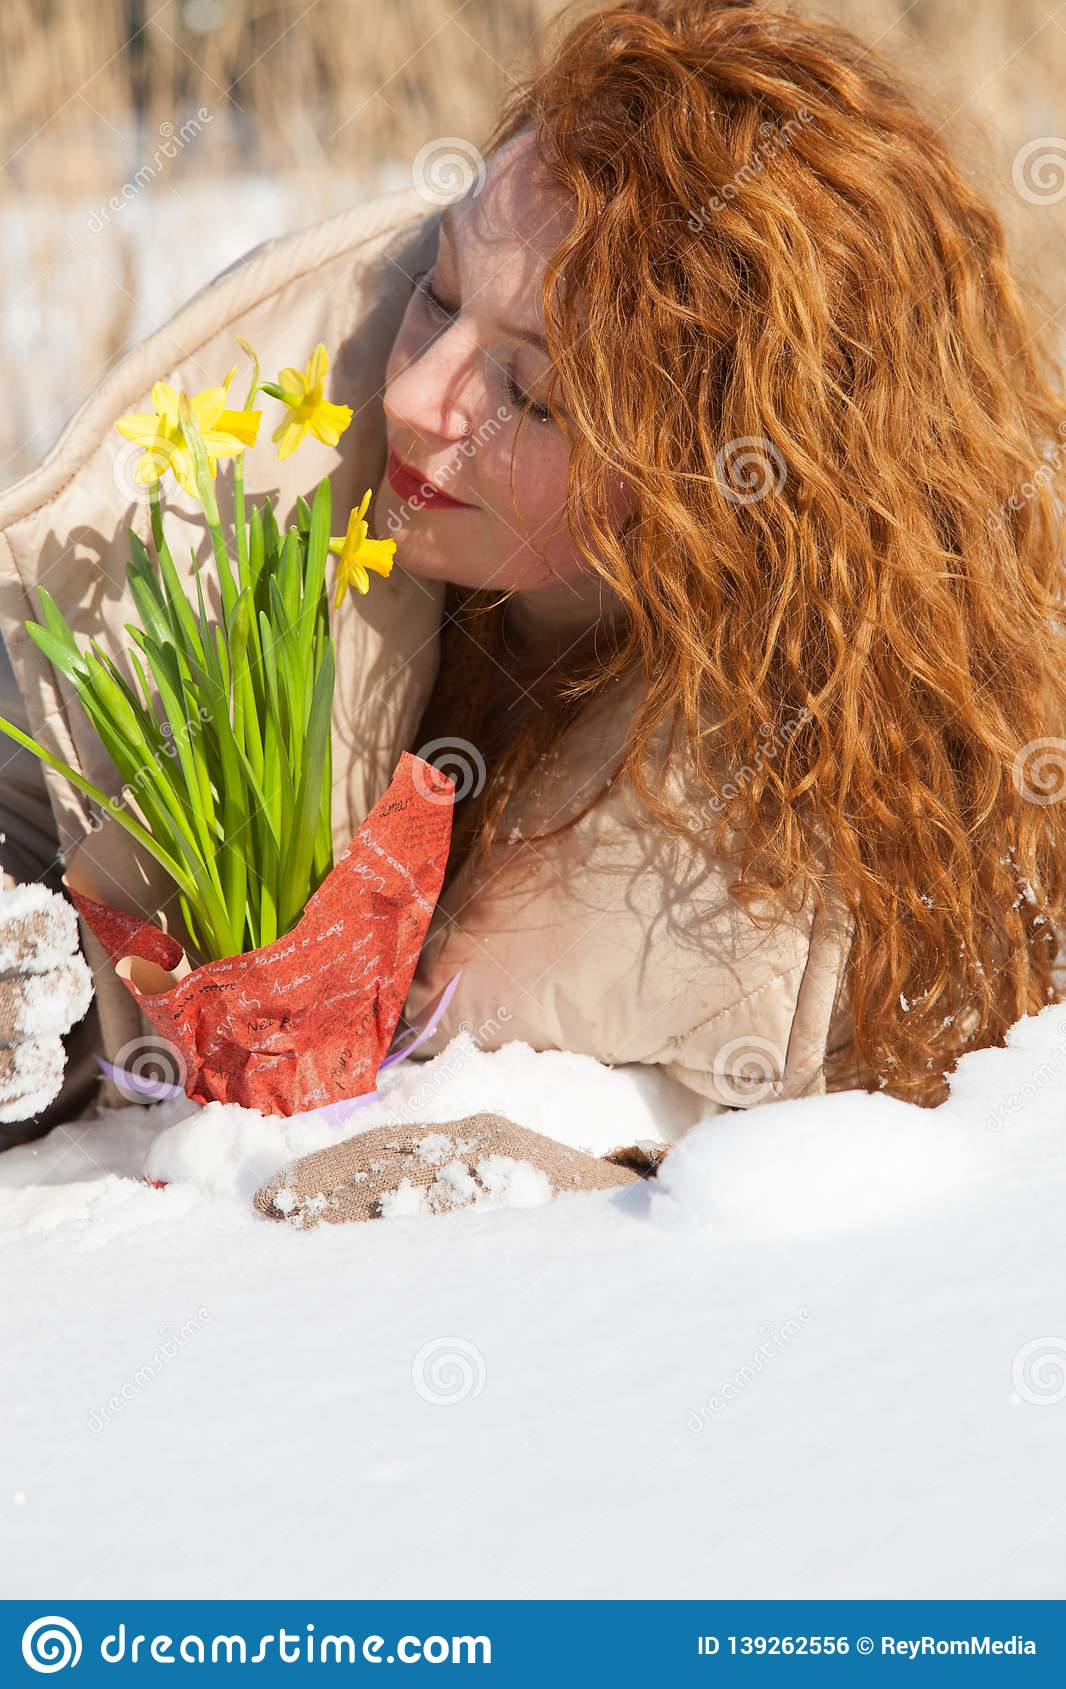 Charming red haired woman smelling yellow snowdrops while resting in snow